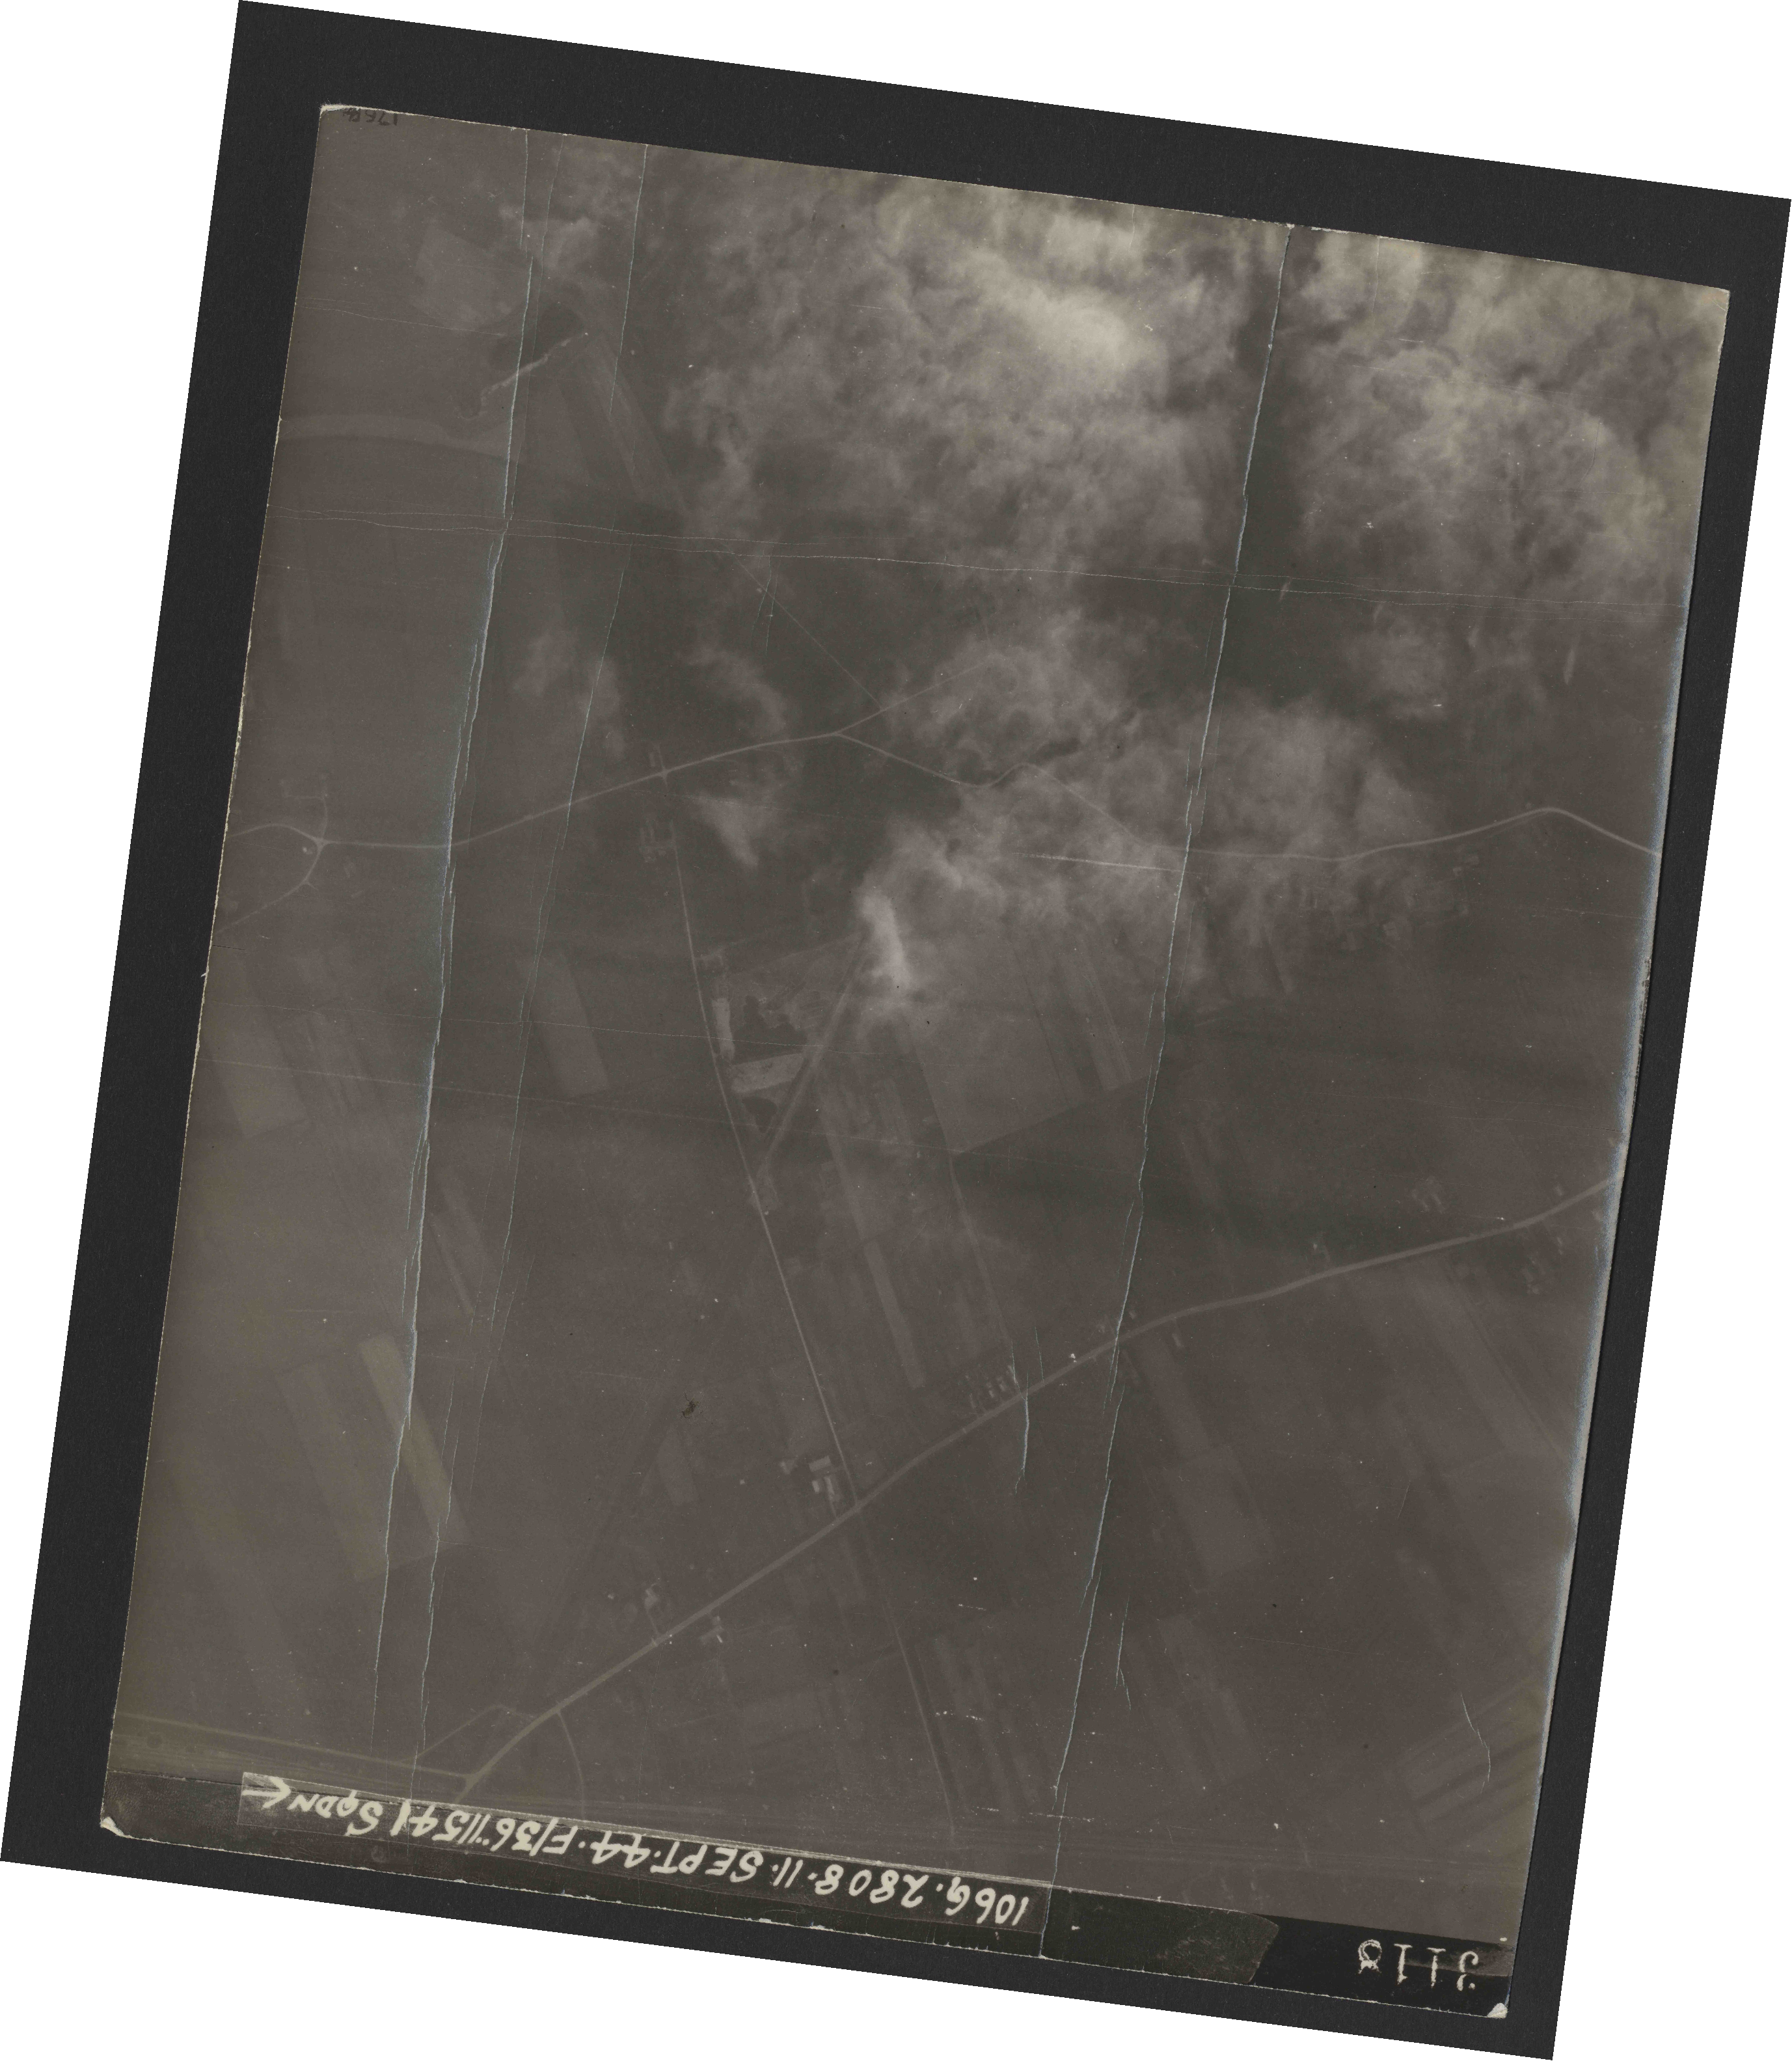 Collection RAF aerial photos 1940-1945 - flight 312, run 04, photo 3117